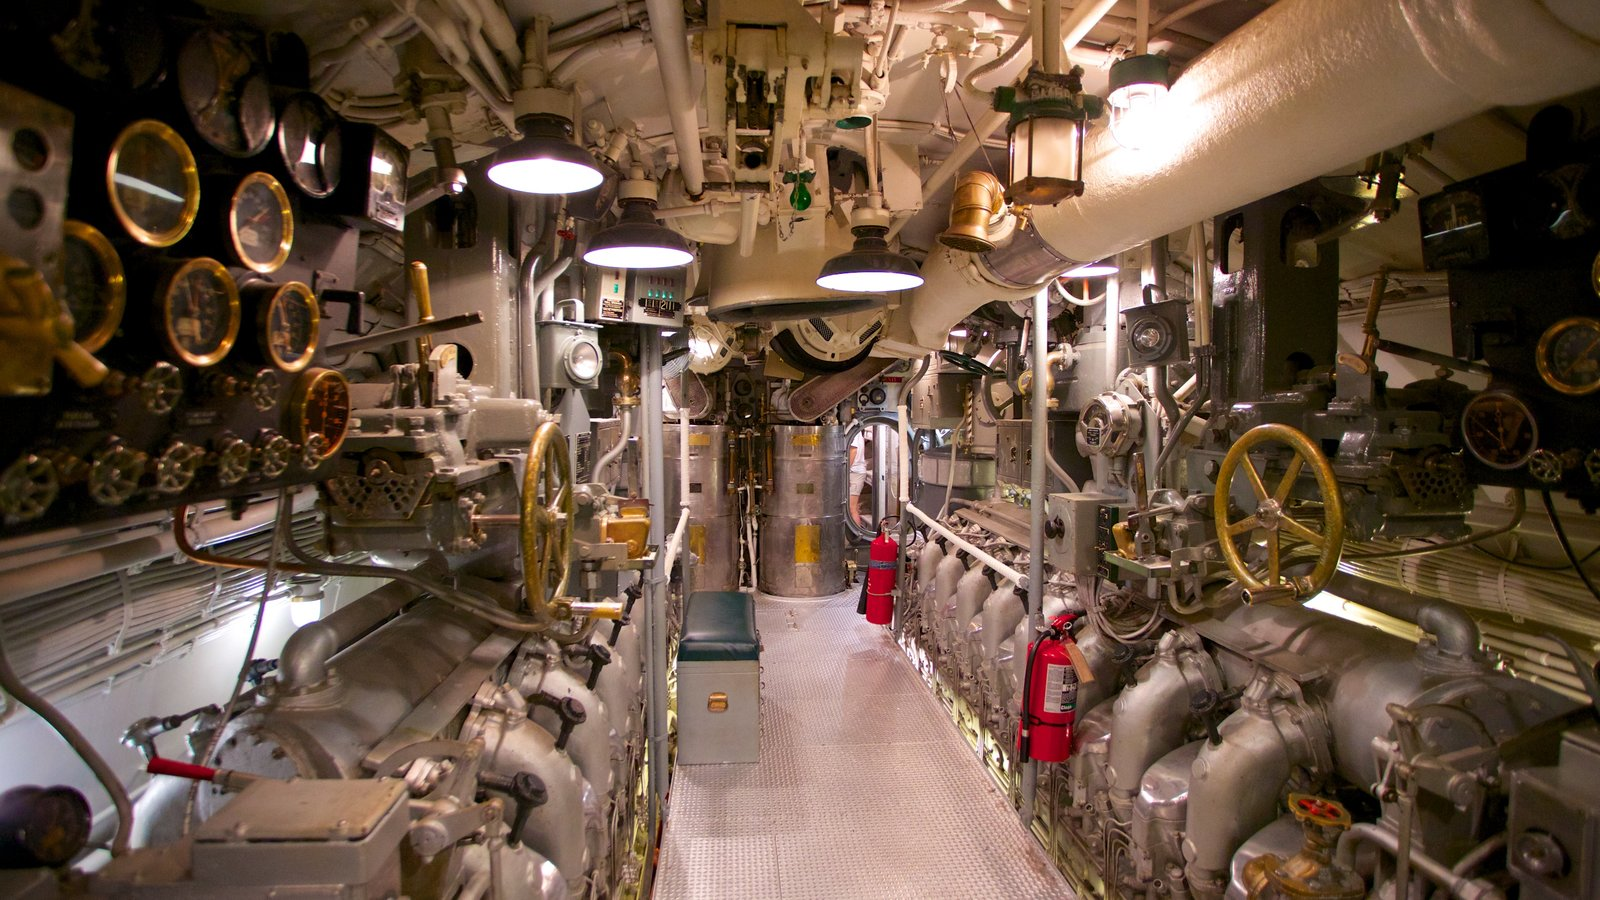 USS Bowfin Submarine Museum and Park featuring interior views